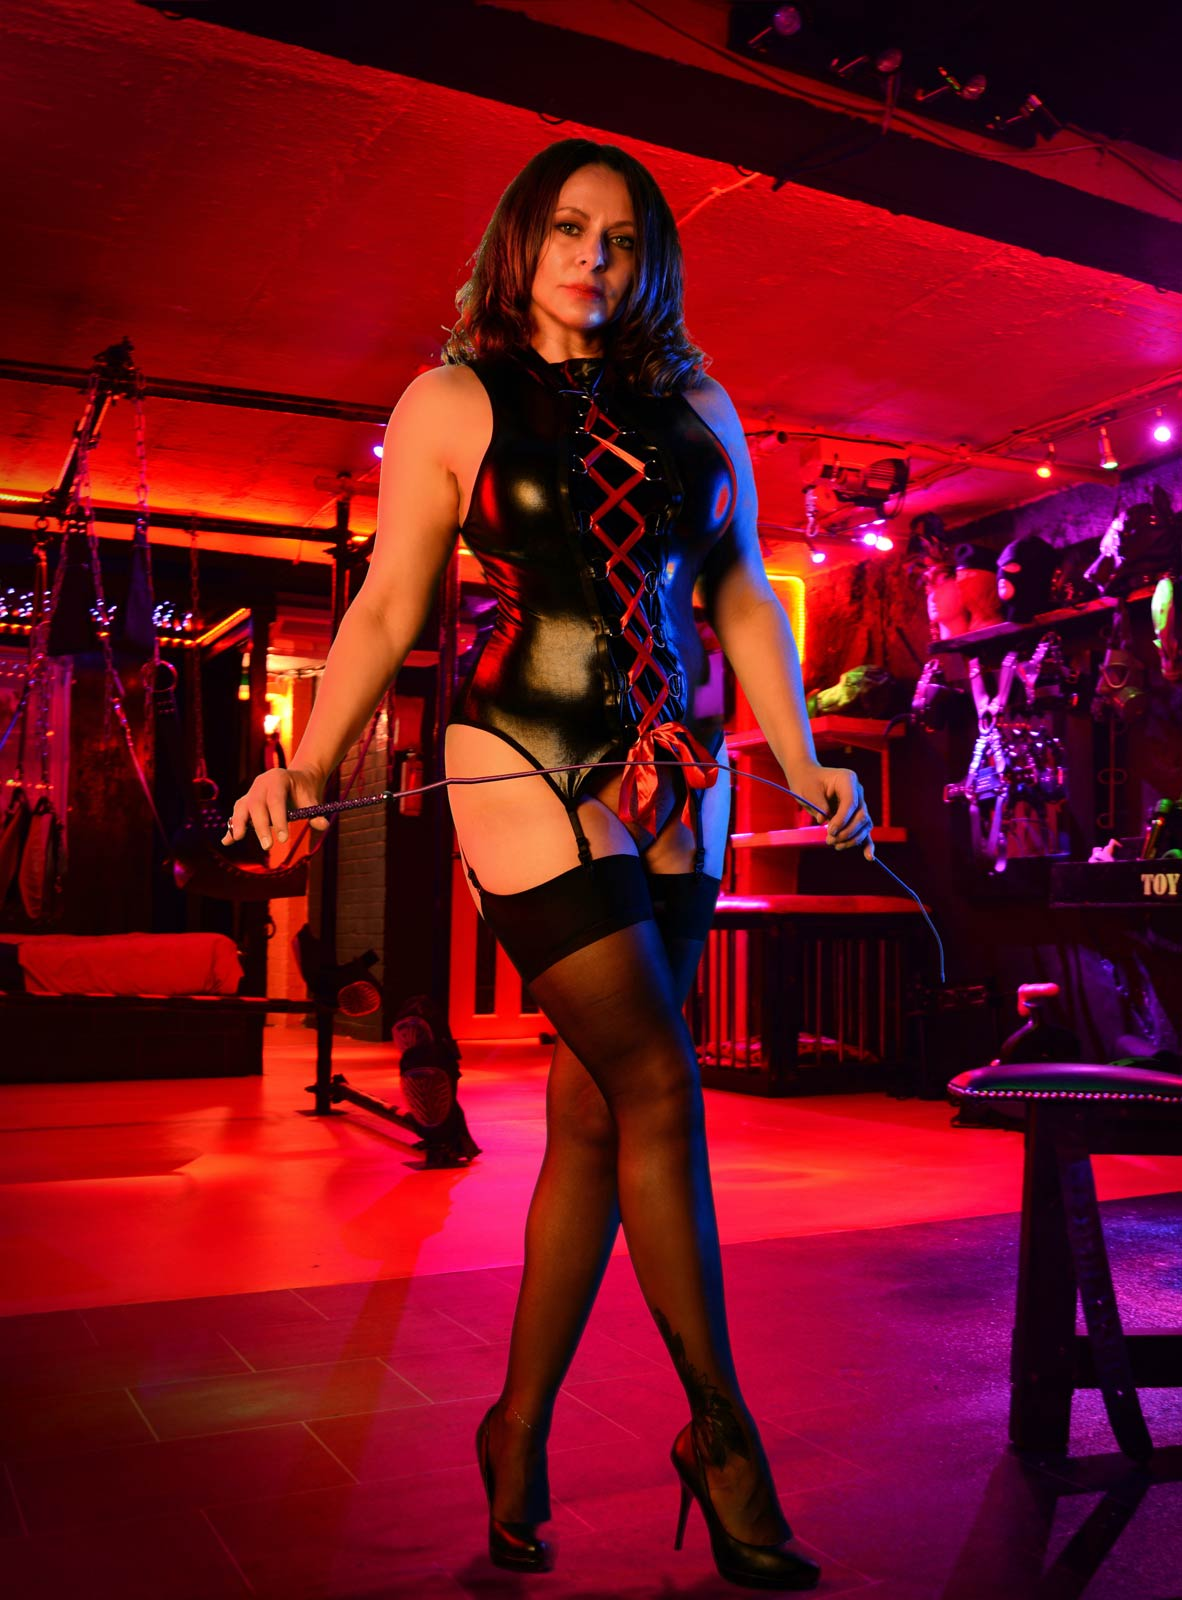 Miss DeLaVere Electrical Play   UK Financial Dominatrix